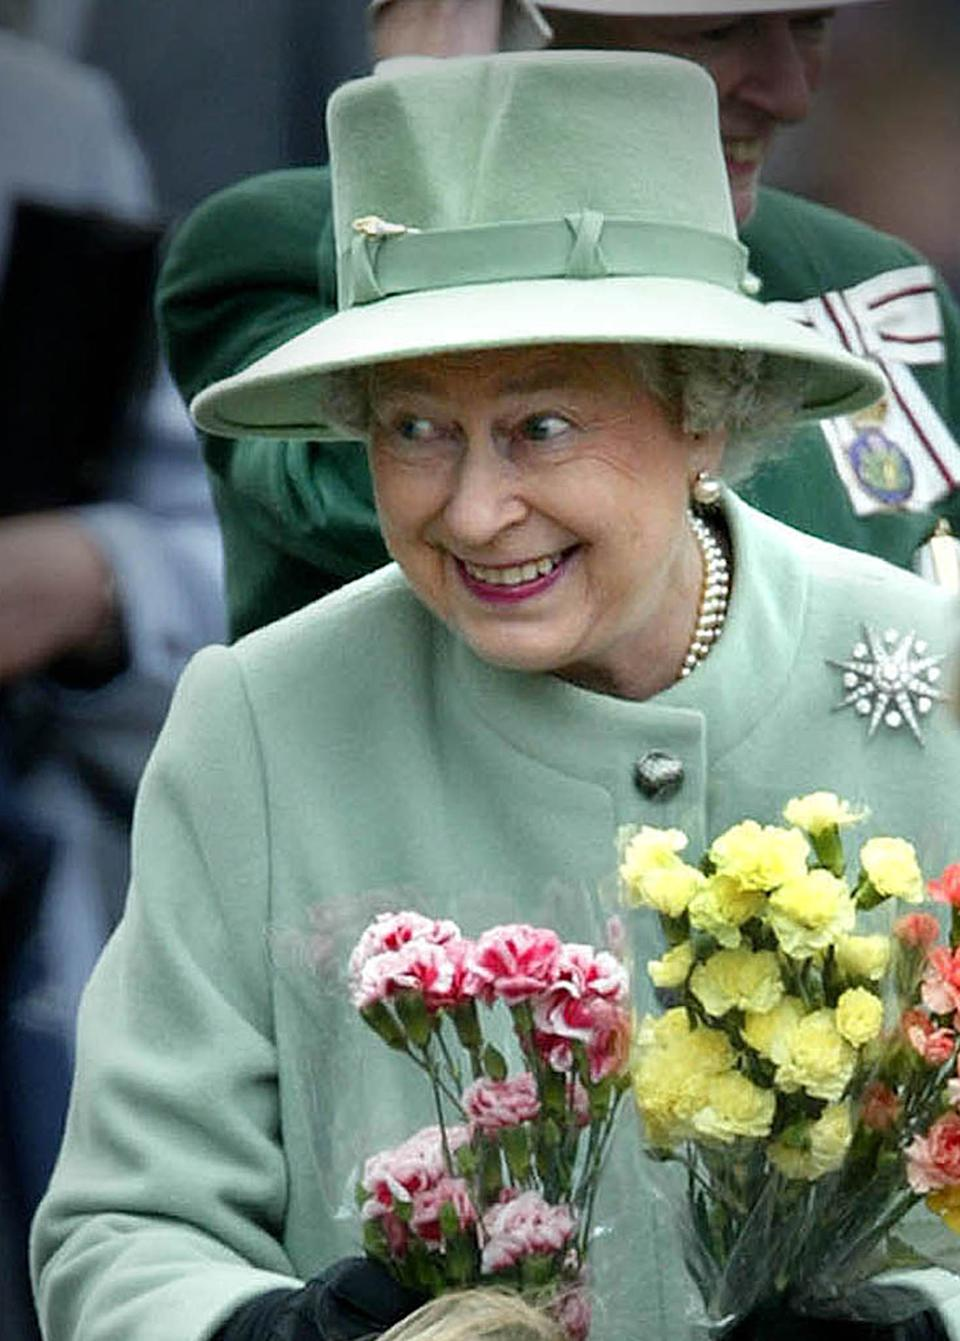 Britain's Queen Elizabeth shows her delight as she is presented with flowers from children during her walkabout on Melrose Market square in the Scottish Borders May 29, 2002. REUTERS/Jeff J Mitchell  JJM/PS